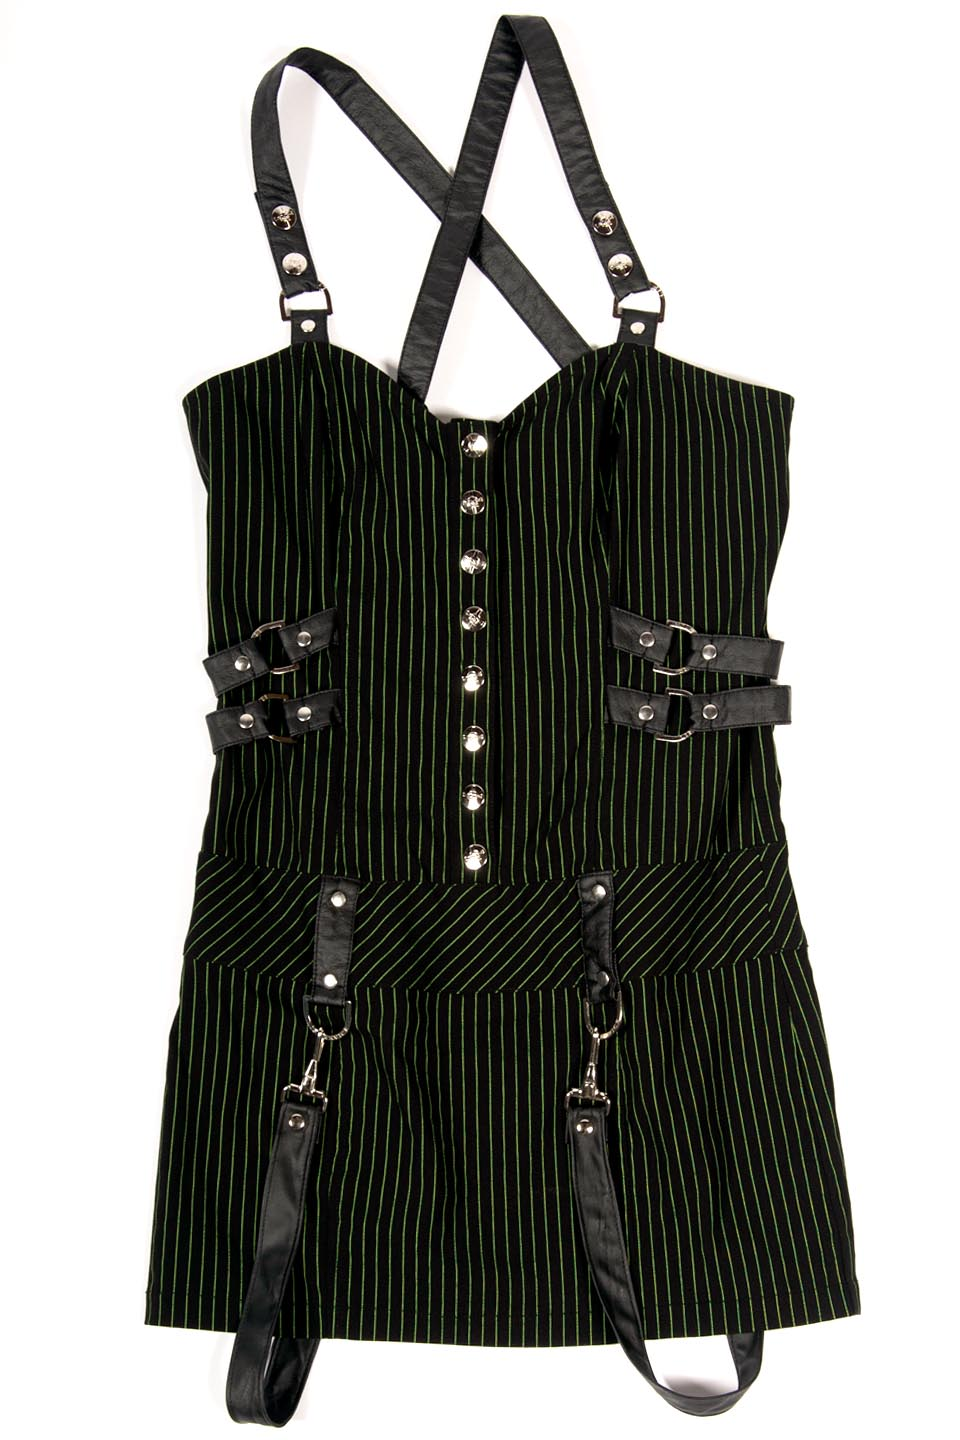 Vintage Gangster Prankster Dress-Dresses-Lip Service